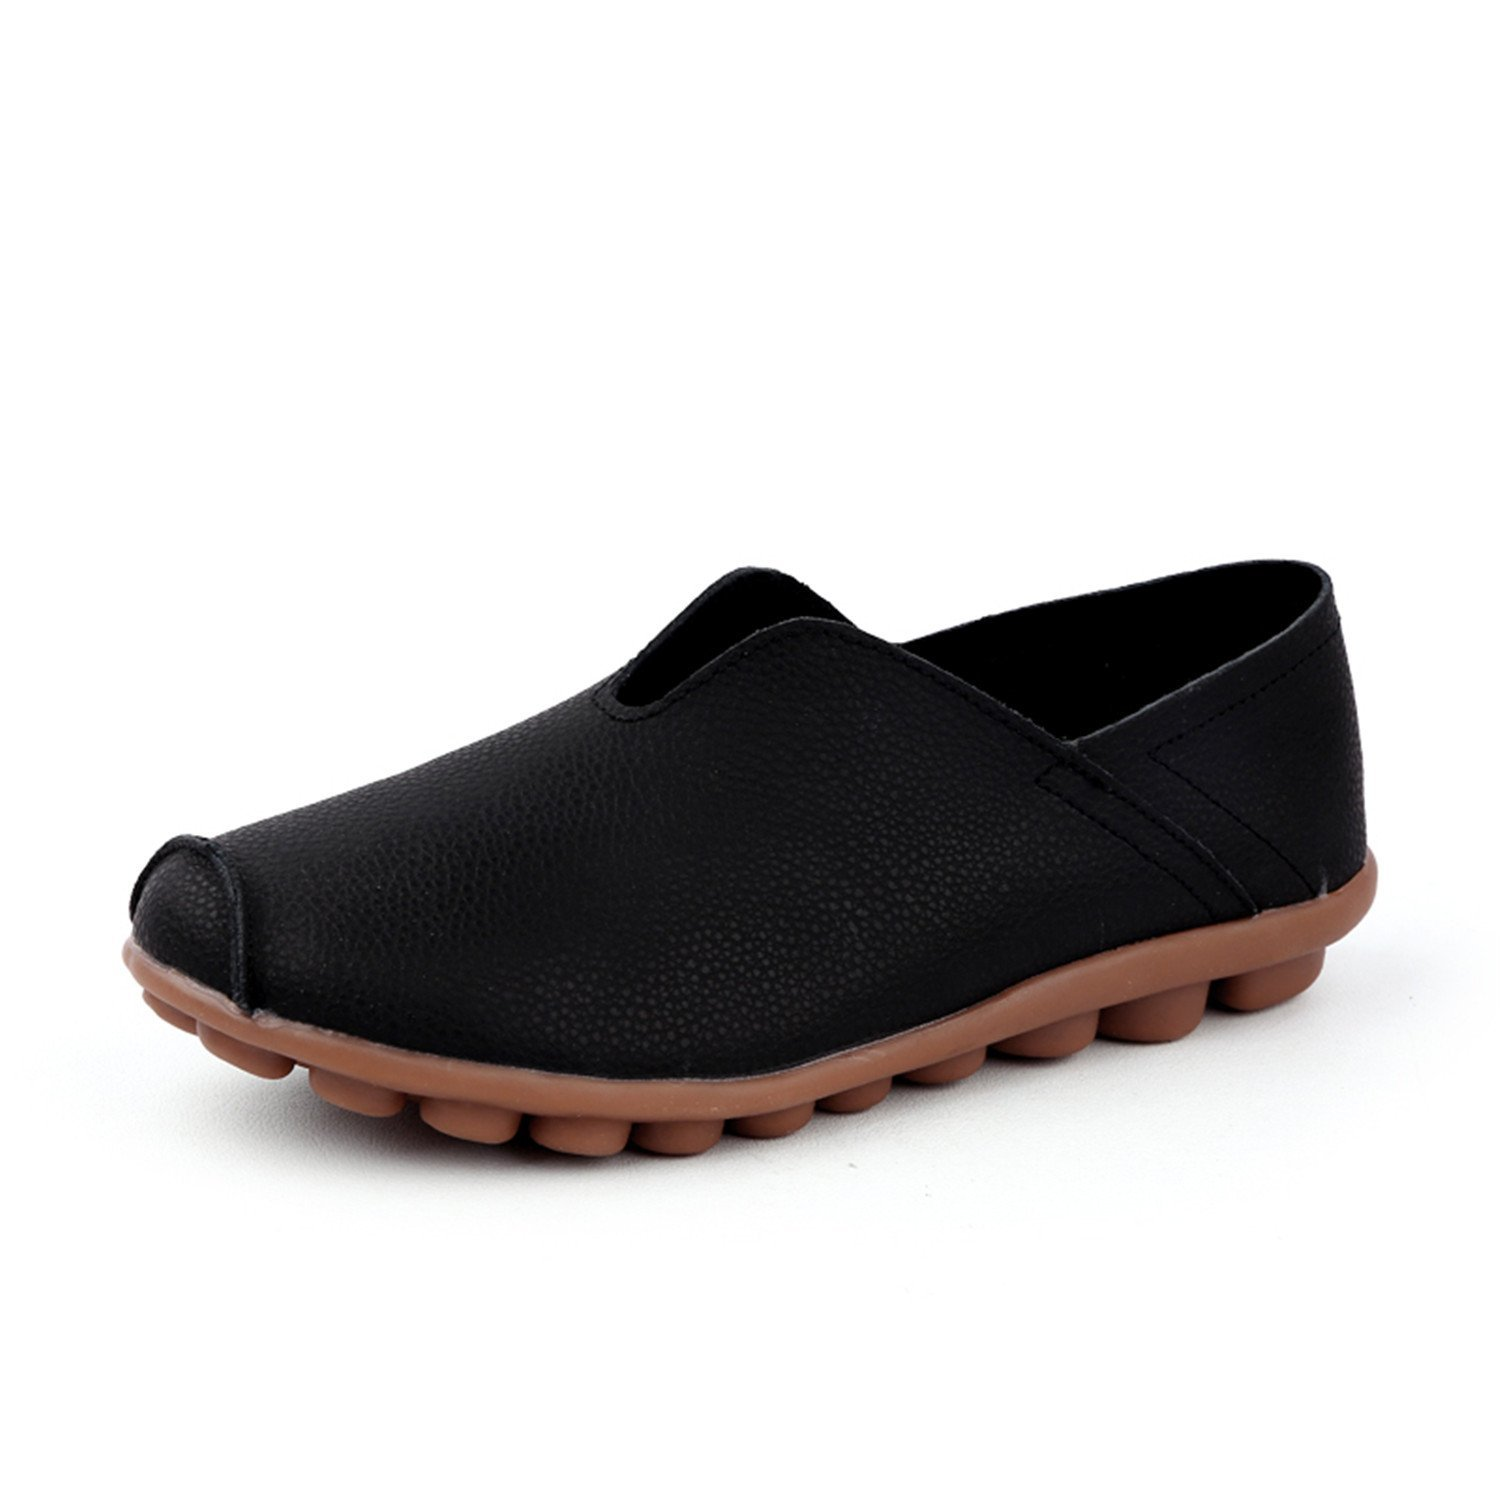 ca46cab38ba3 Get Quotations · Surprising Day Shoes Women New Women Shoes Moccasins  Mother Loafers Soft Leisure Flats Female Driving Casual